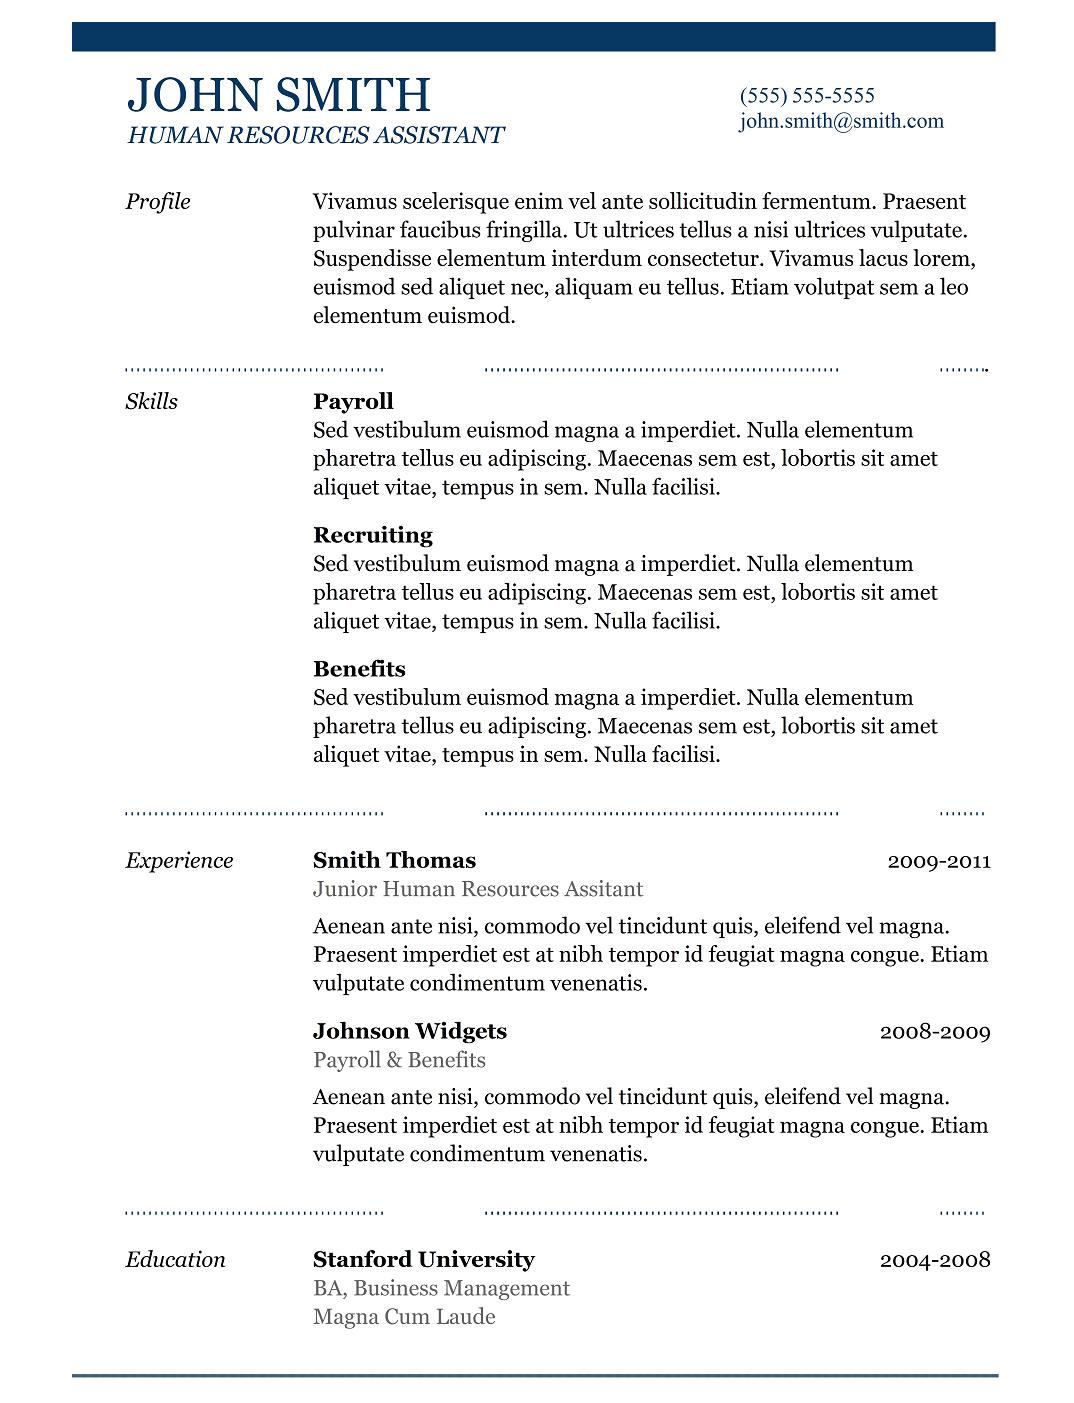 how to prepare a curriculum vitae templates best how to prepare a curriculum vitae templates